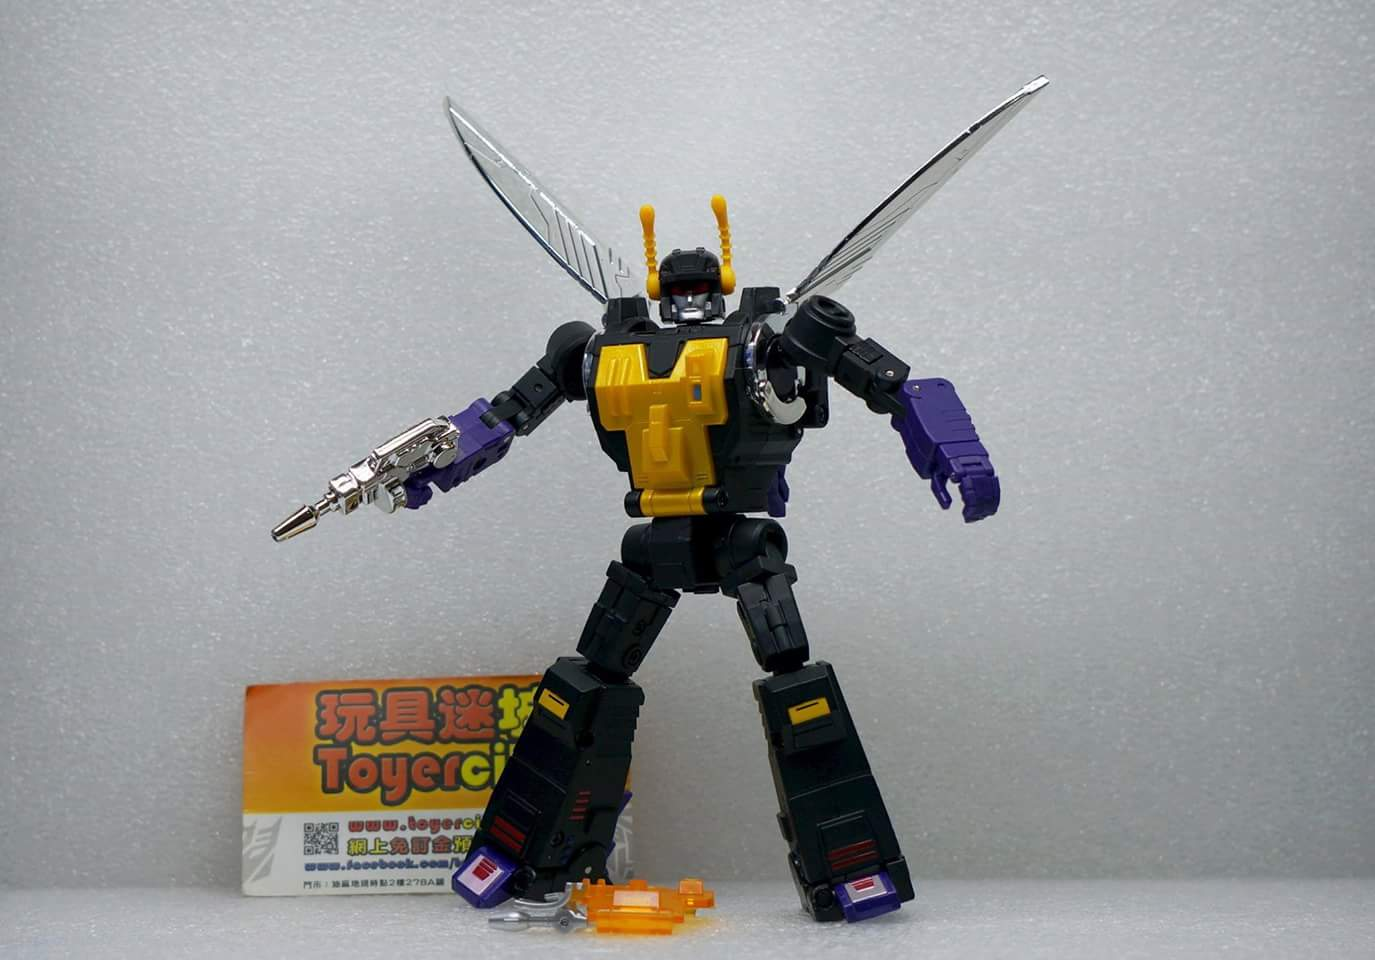 [Fanstoys] Produit Tiers - Jouet FT-12 Grenadier / FT-13 Mercenary / FT-14 Forager - aka Insecticons - Page 3 4cERUuC0